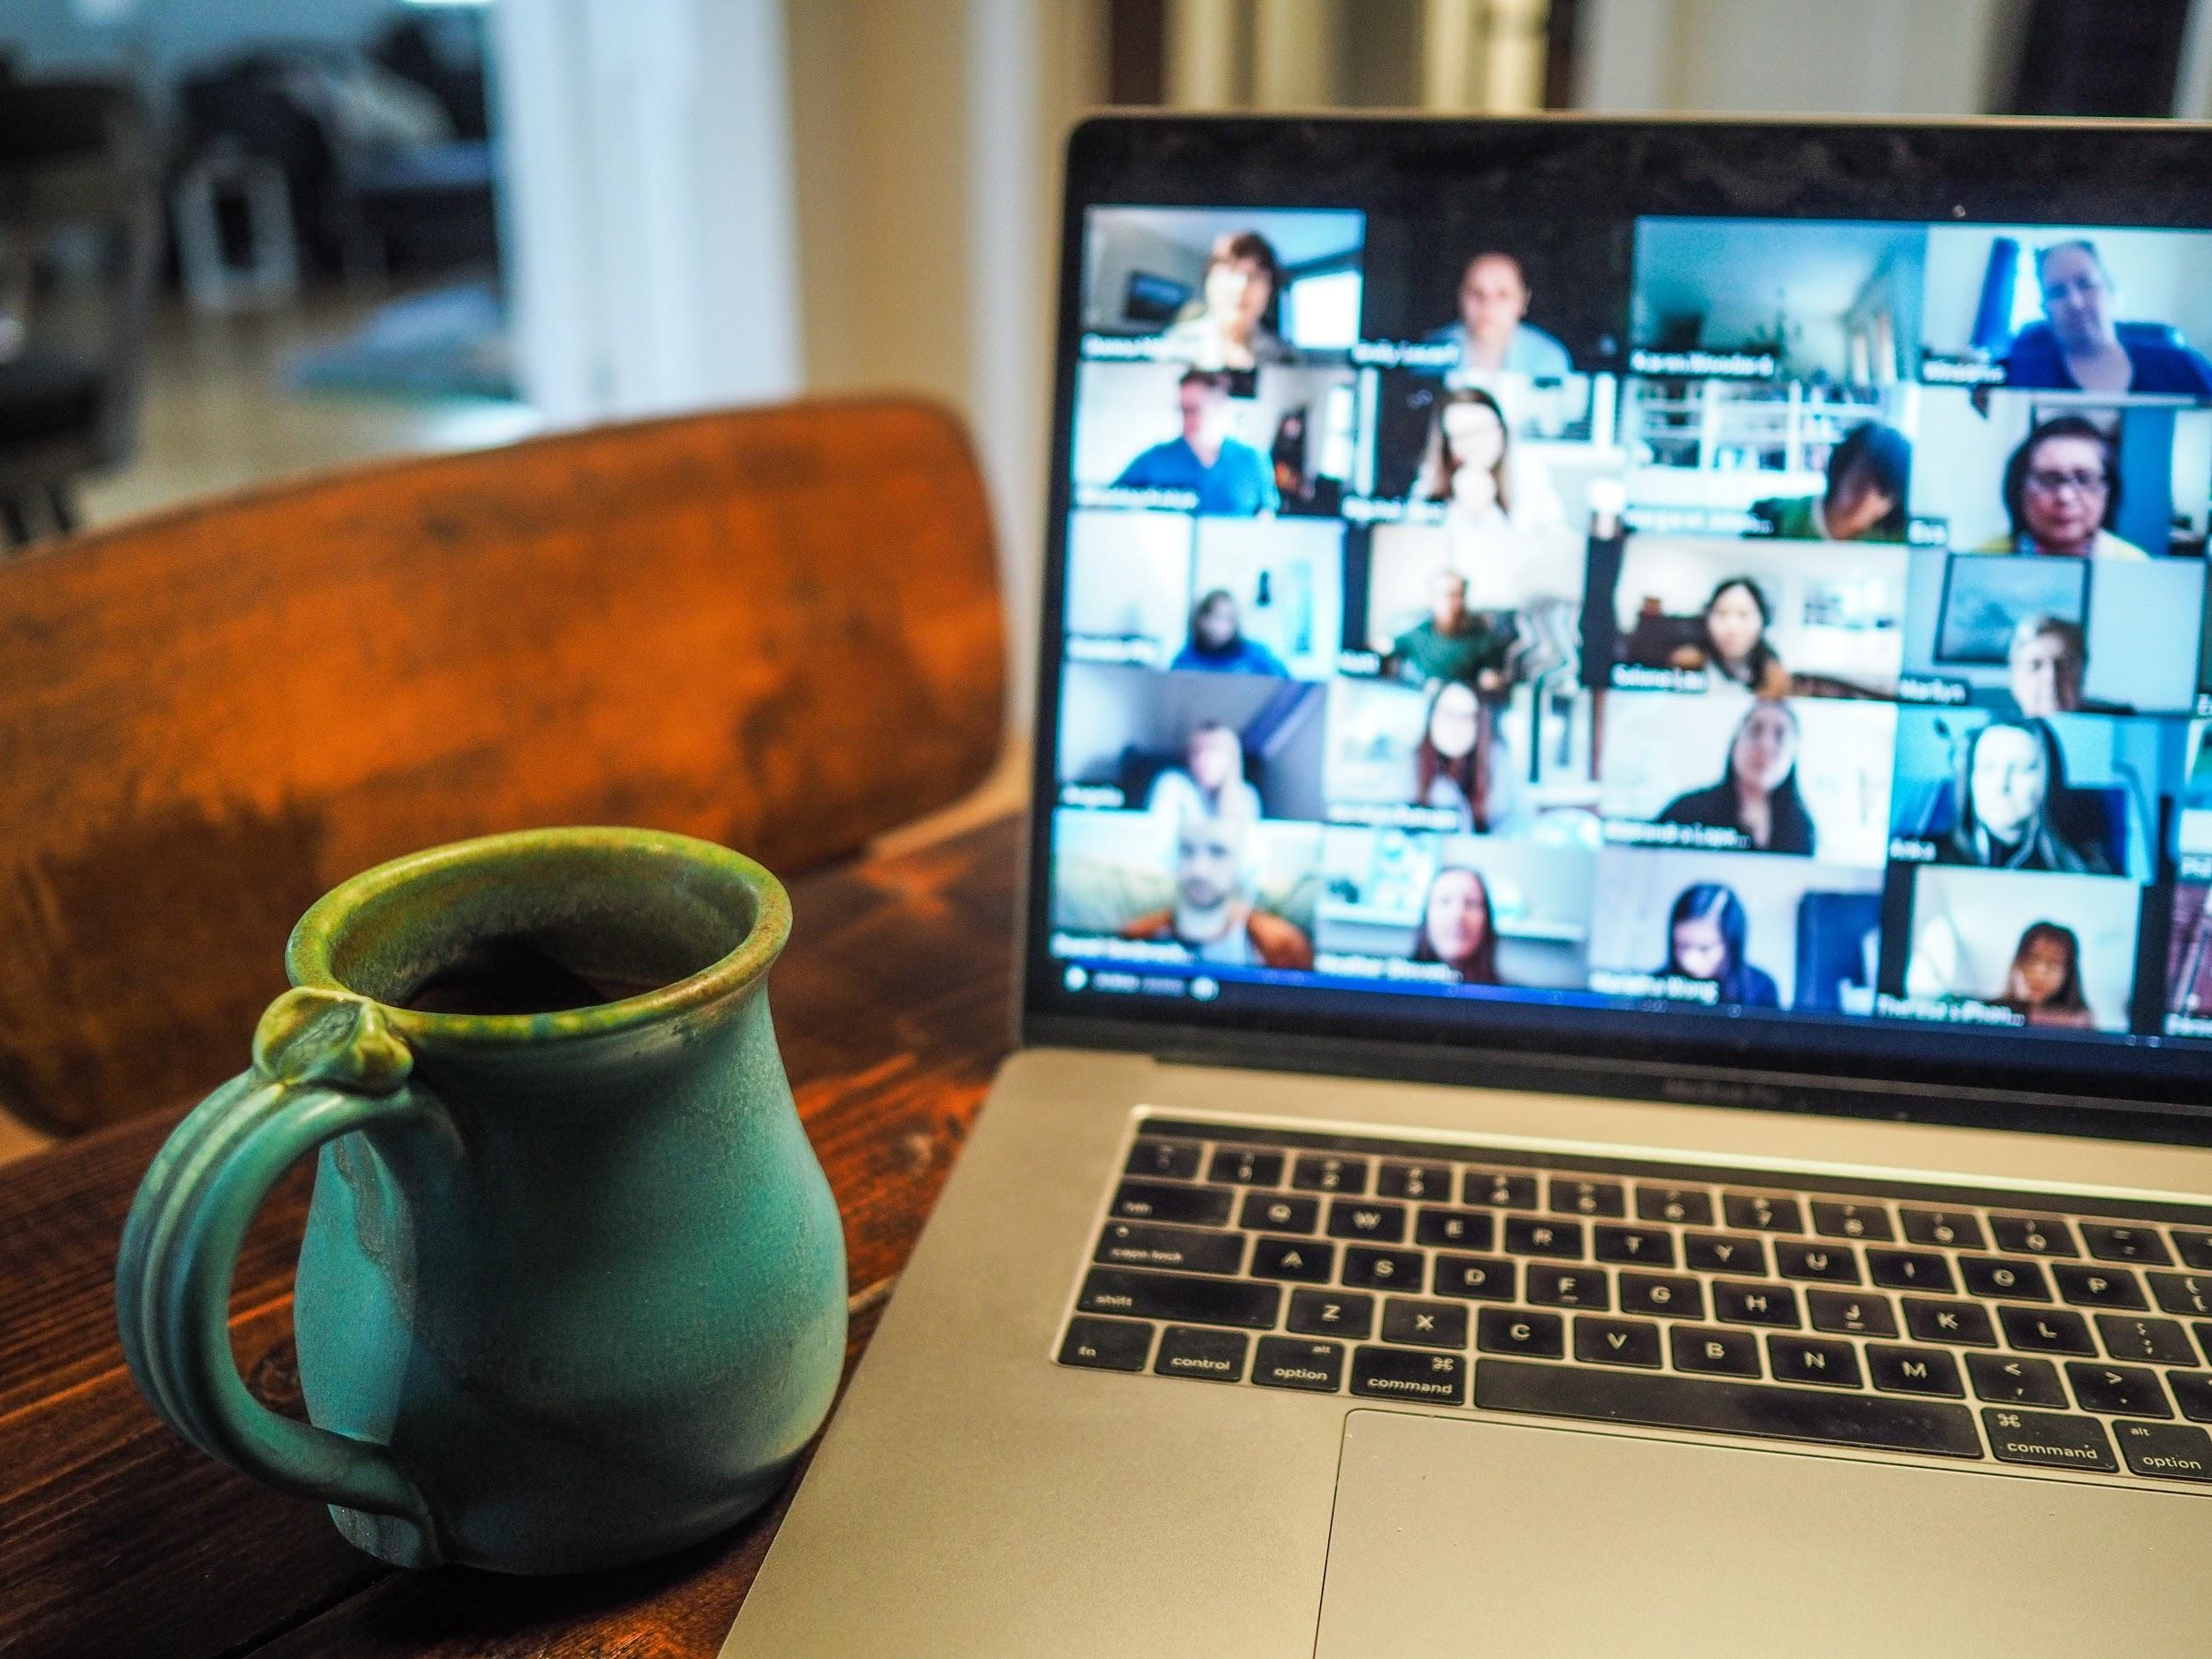 How to Support Your Employees Struggling with Zoom Fatigue